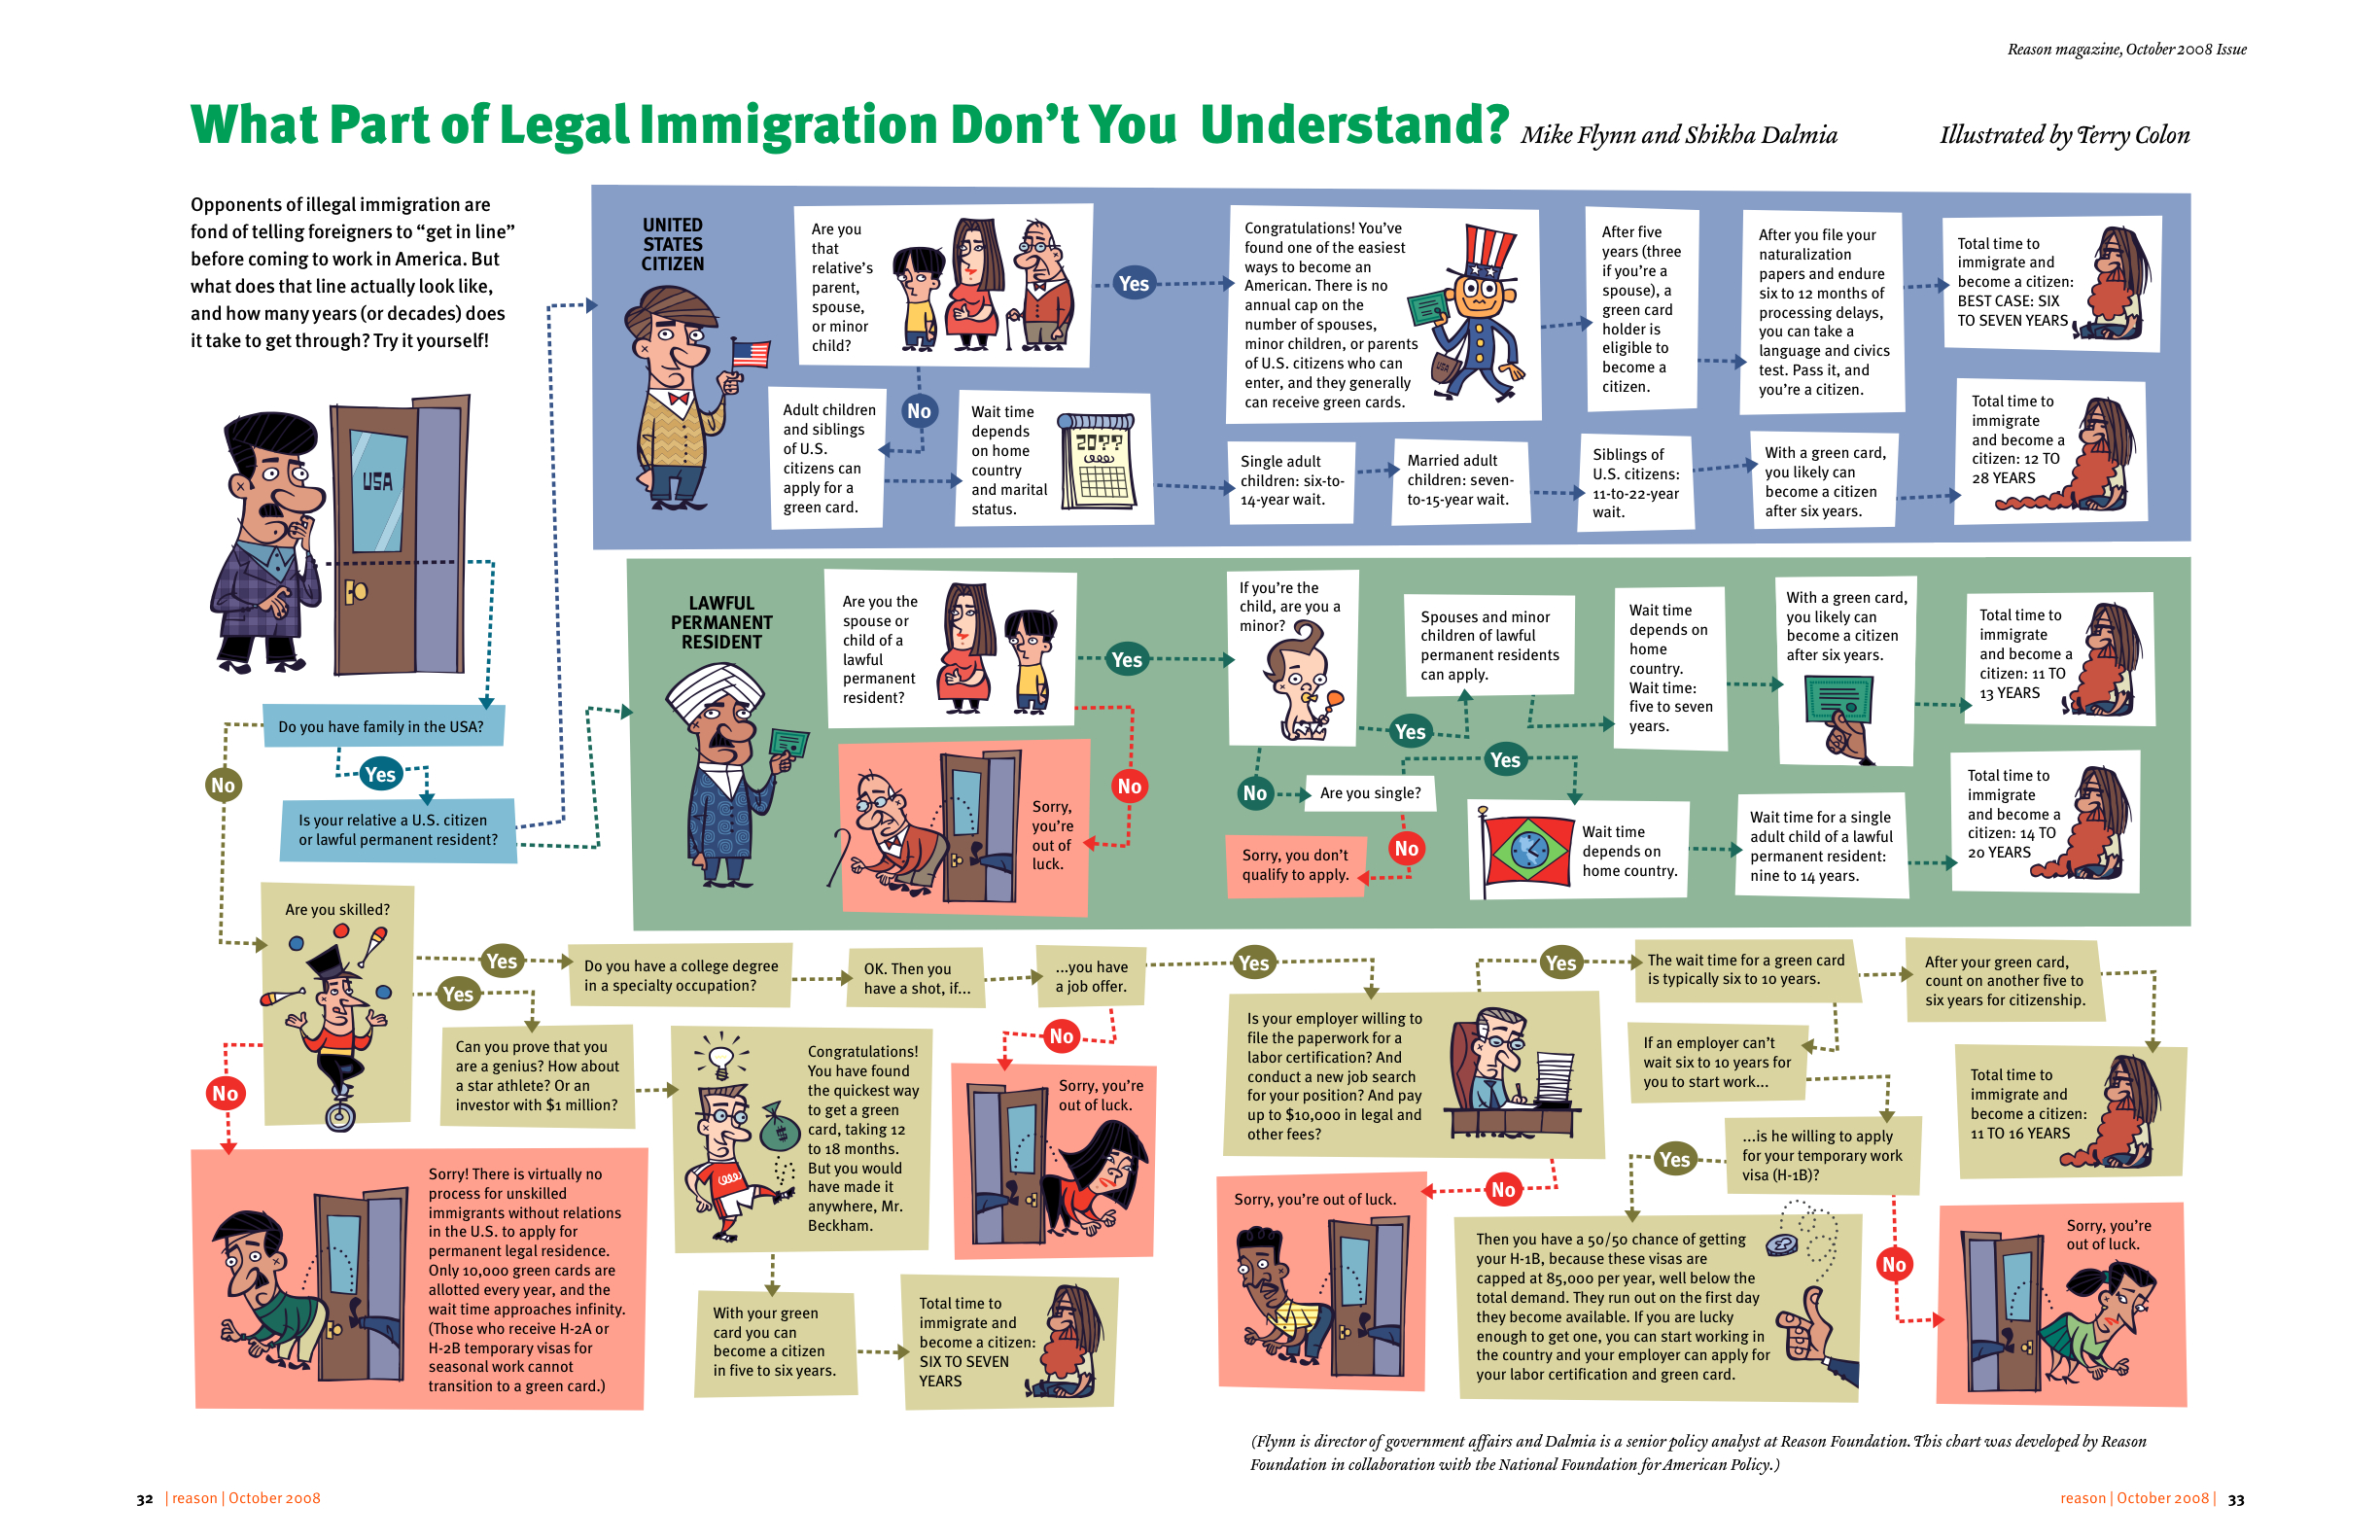 understanding immigration in america Immigration has contributed to many of the economic, social, and political  processes  we use cookies to broadly understand traffic to this website  for a  nation of immigrants and immigration, the united states adjusts its.